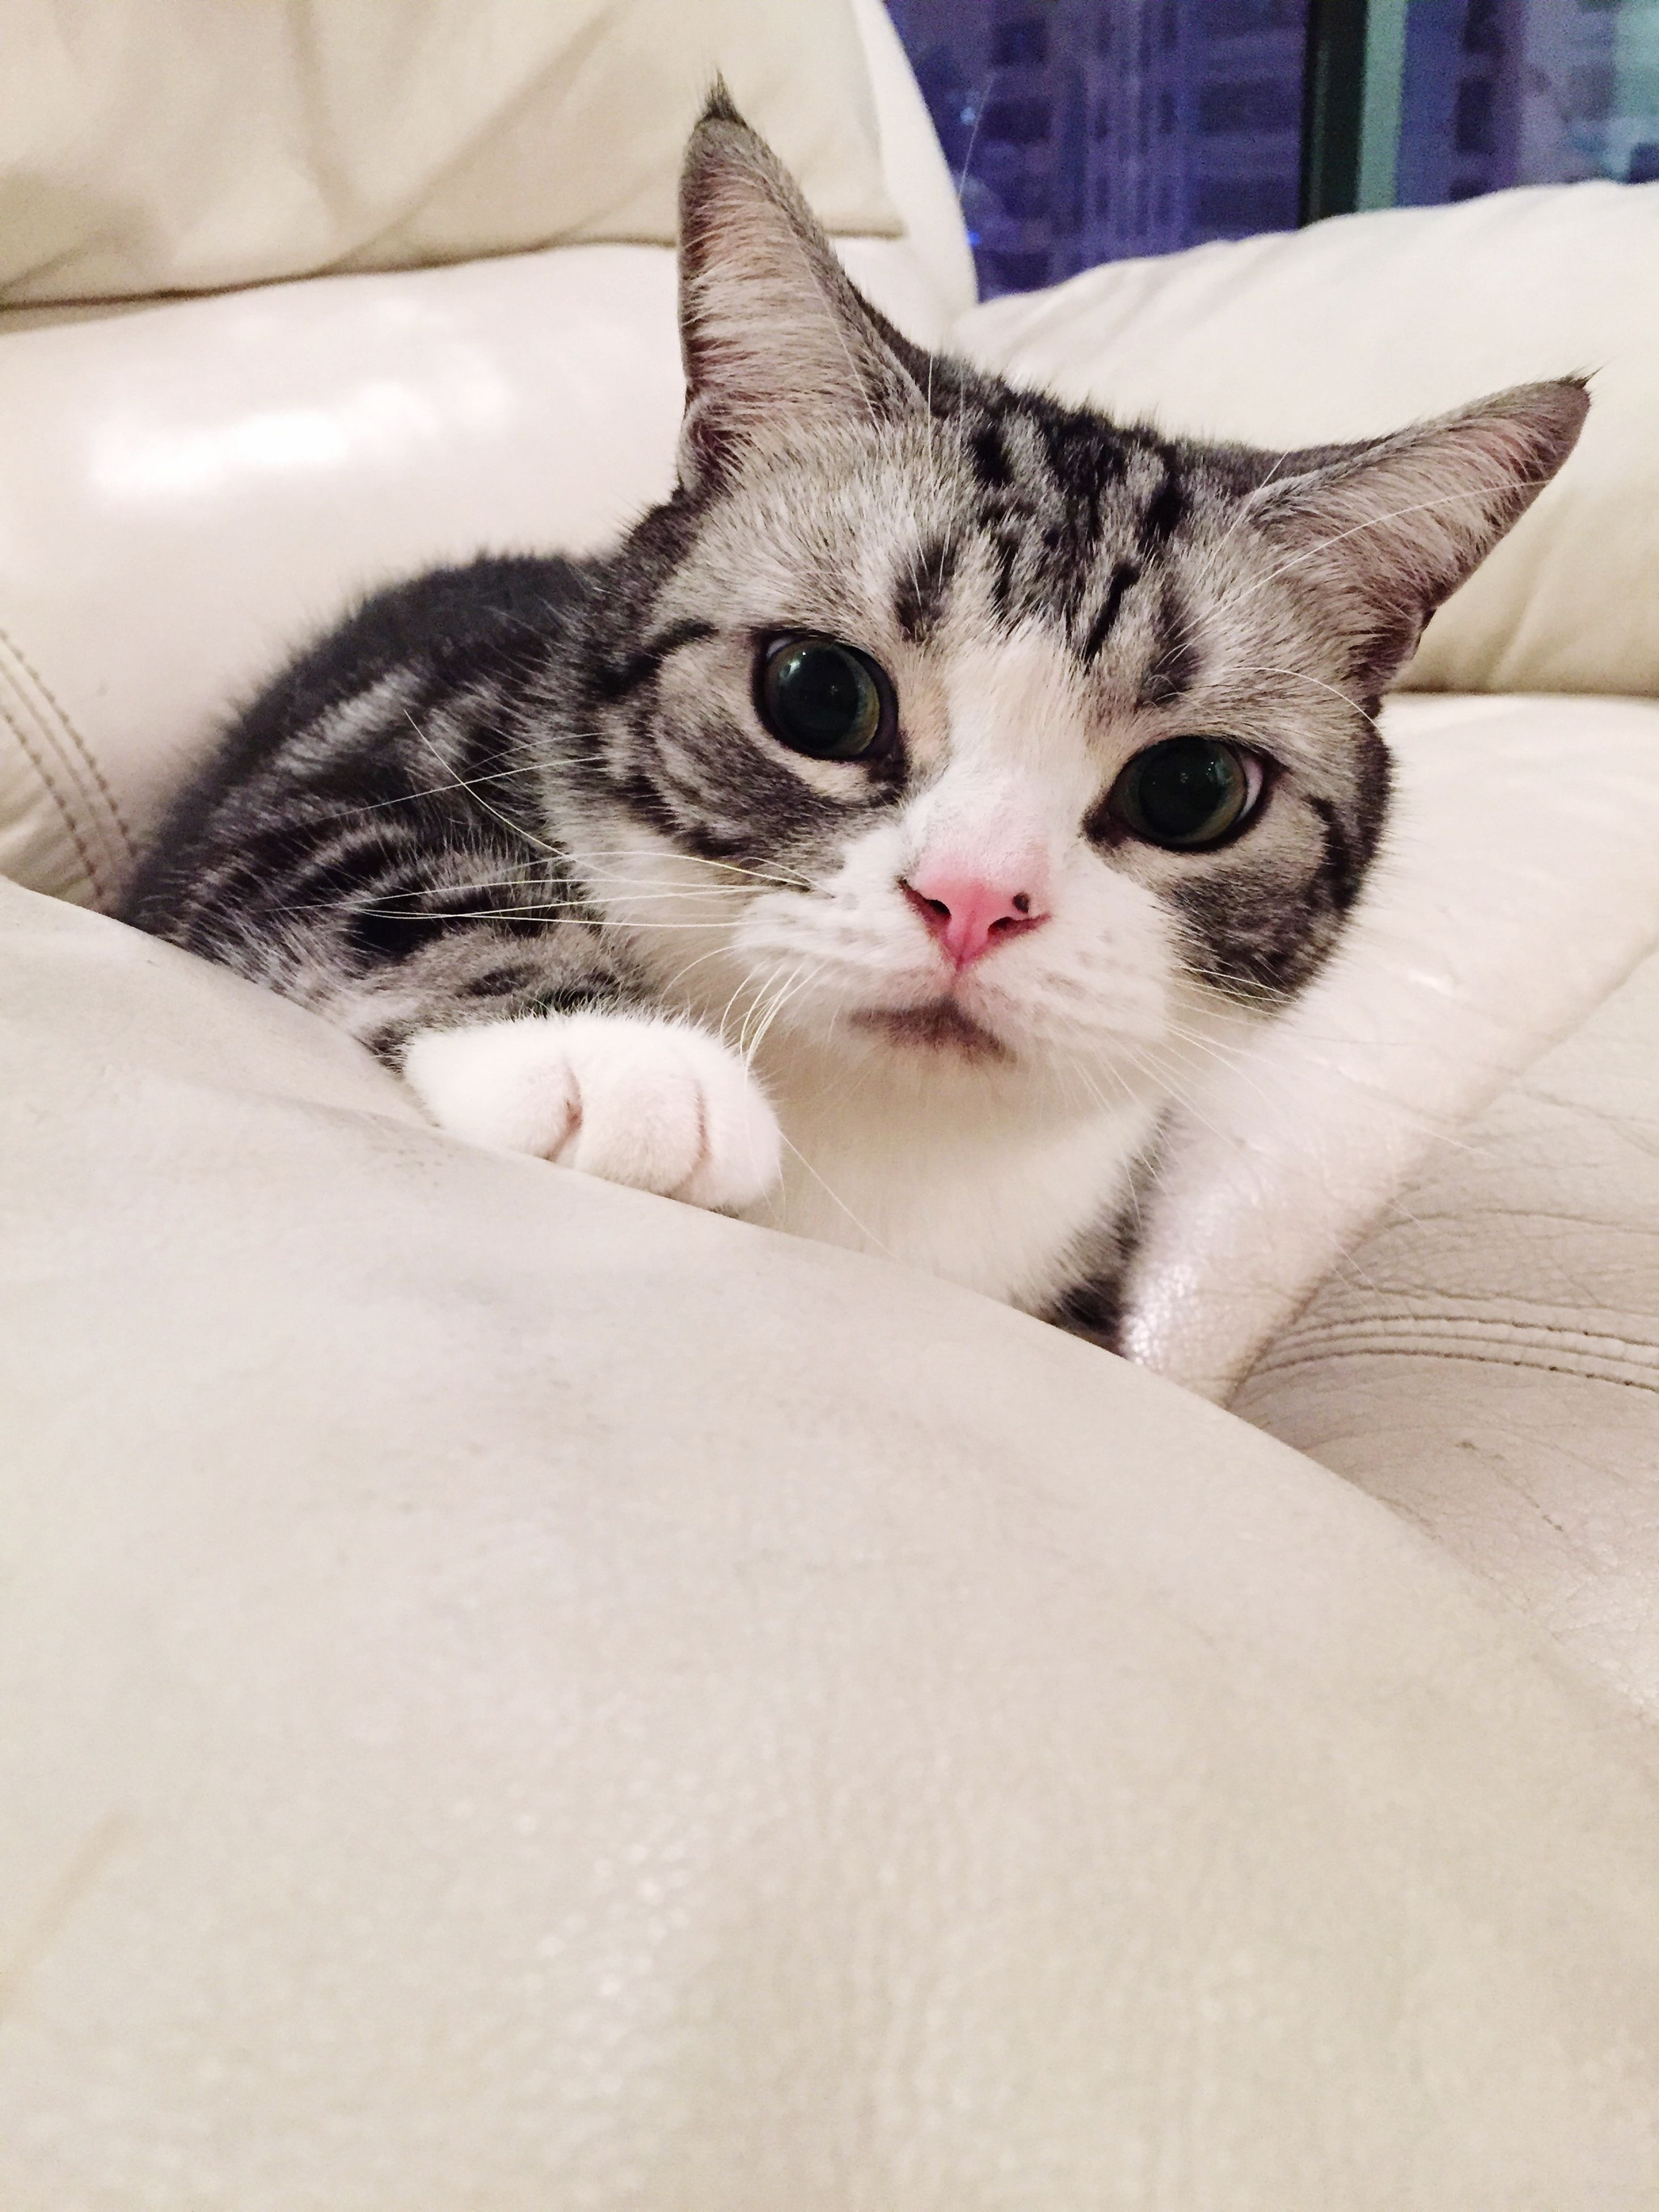 domestic cat, pets, domestic animals, cat, animal themes, one animal, feline, mammal, portrait, indoors, looking at camera, whisker, relaxation, bed, close-up, lying down, resting, staring, alertness, home interior